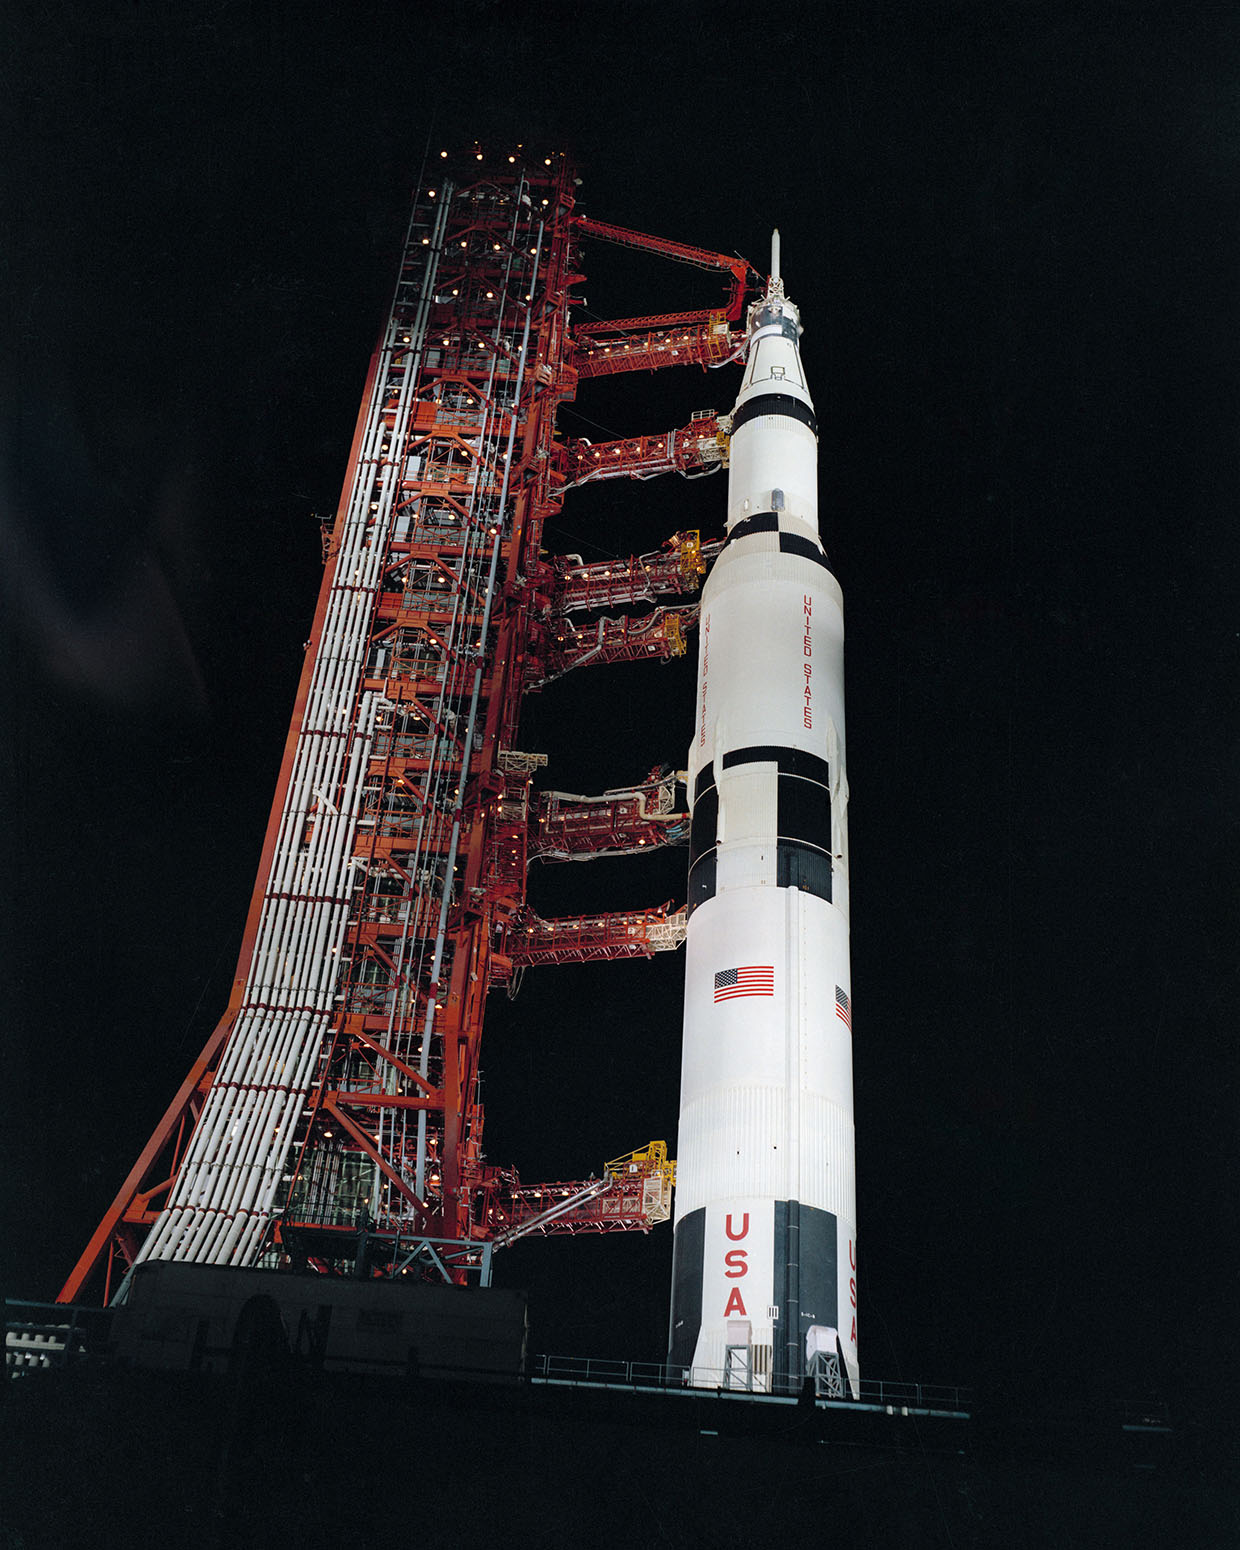 A large Black and White rocket, with a red launch tower, similar Apollo 13